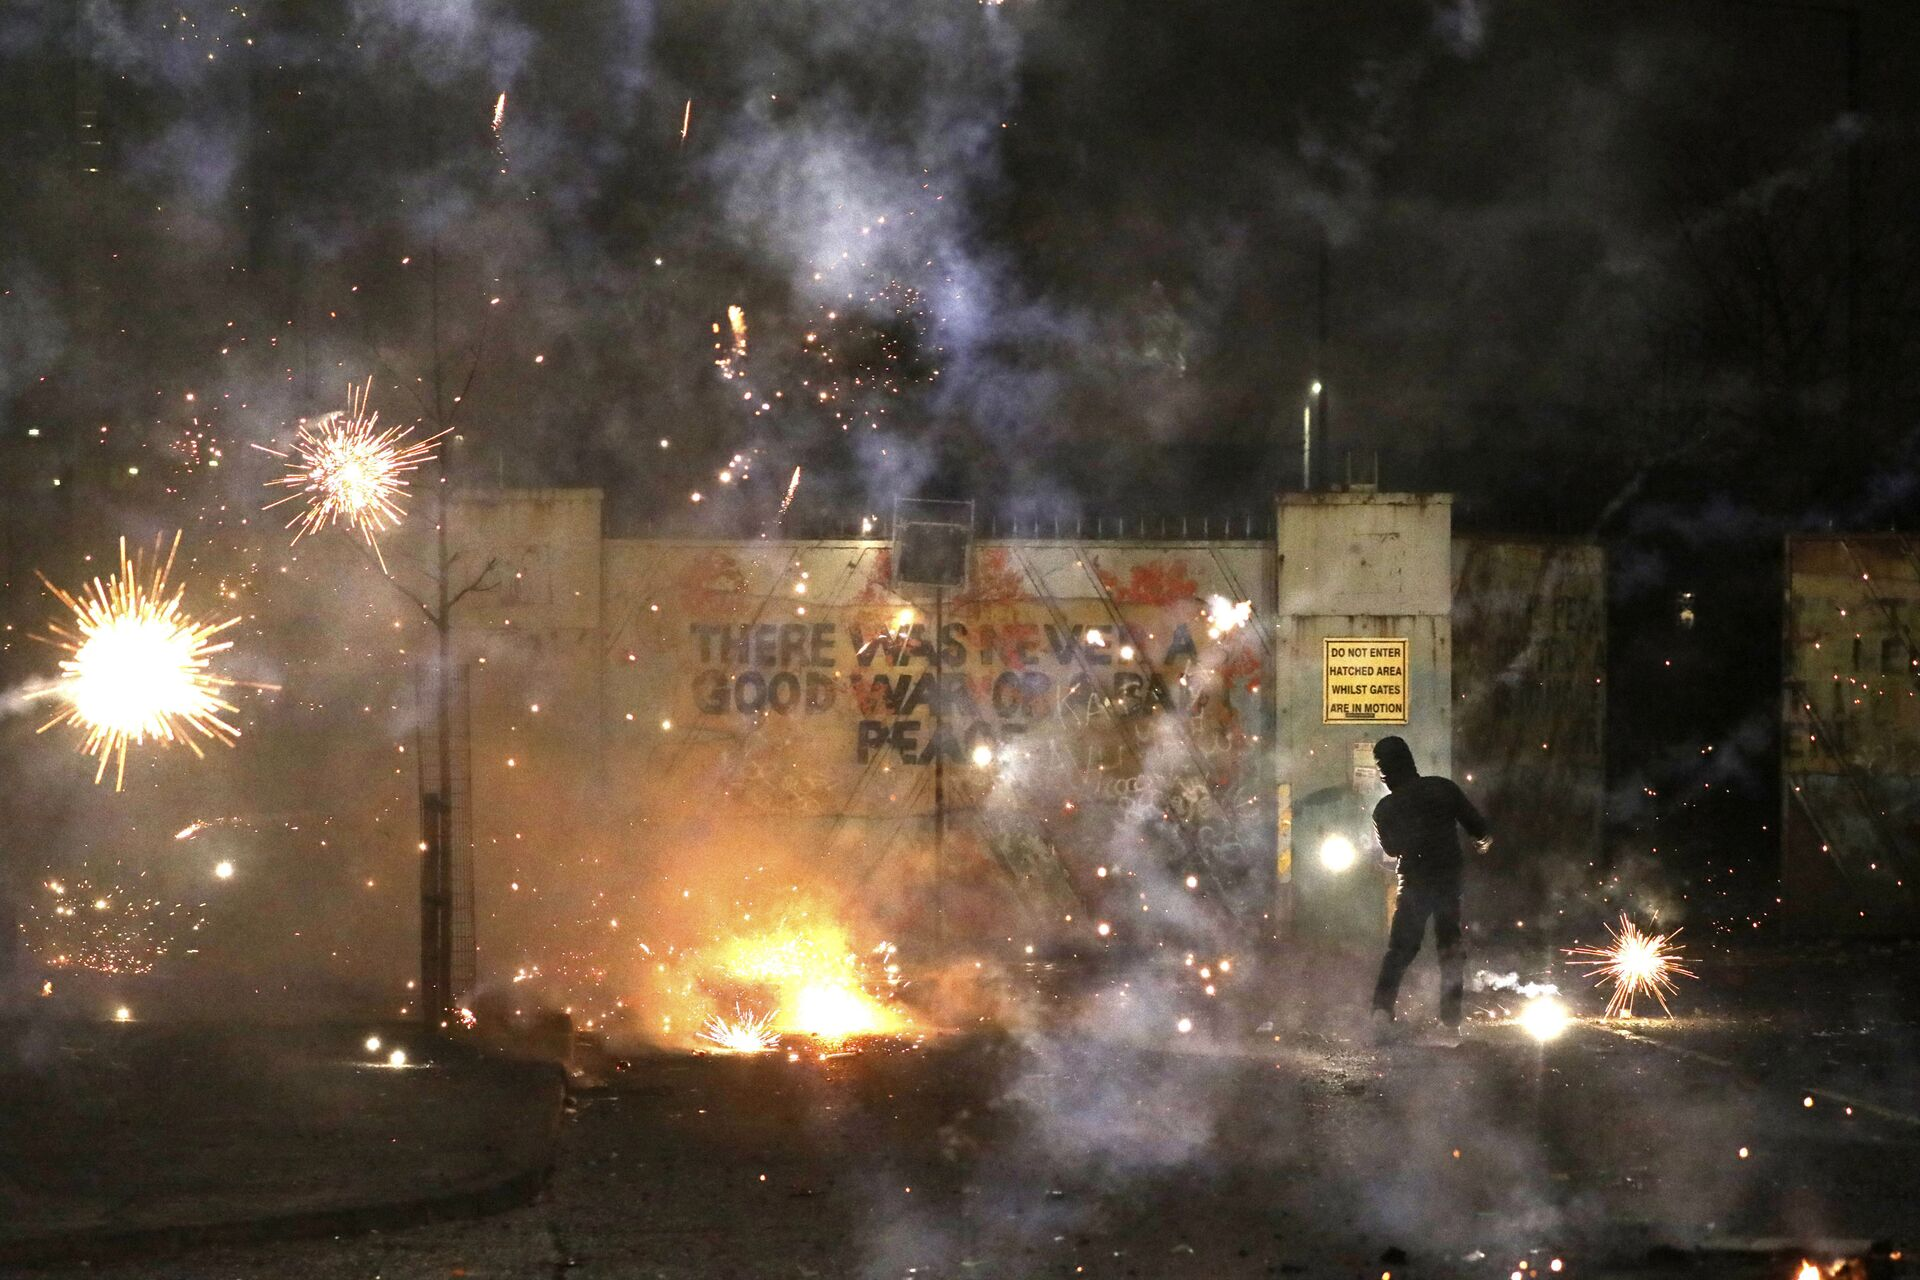 Fireworks explode as Nationalist and Loyalist rioters clash with one another at the peace wall on Lanark Way in West Belfast, Northern Ireland, Wednesday, April 7, 2021 - Sputnik International, 1920, 13.10.2021